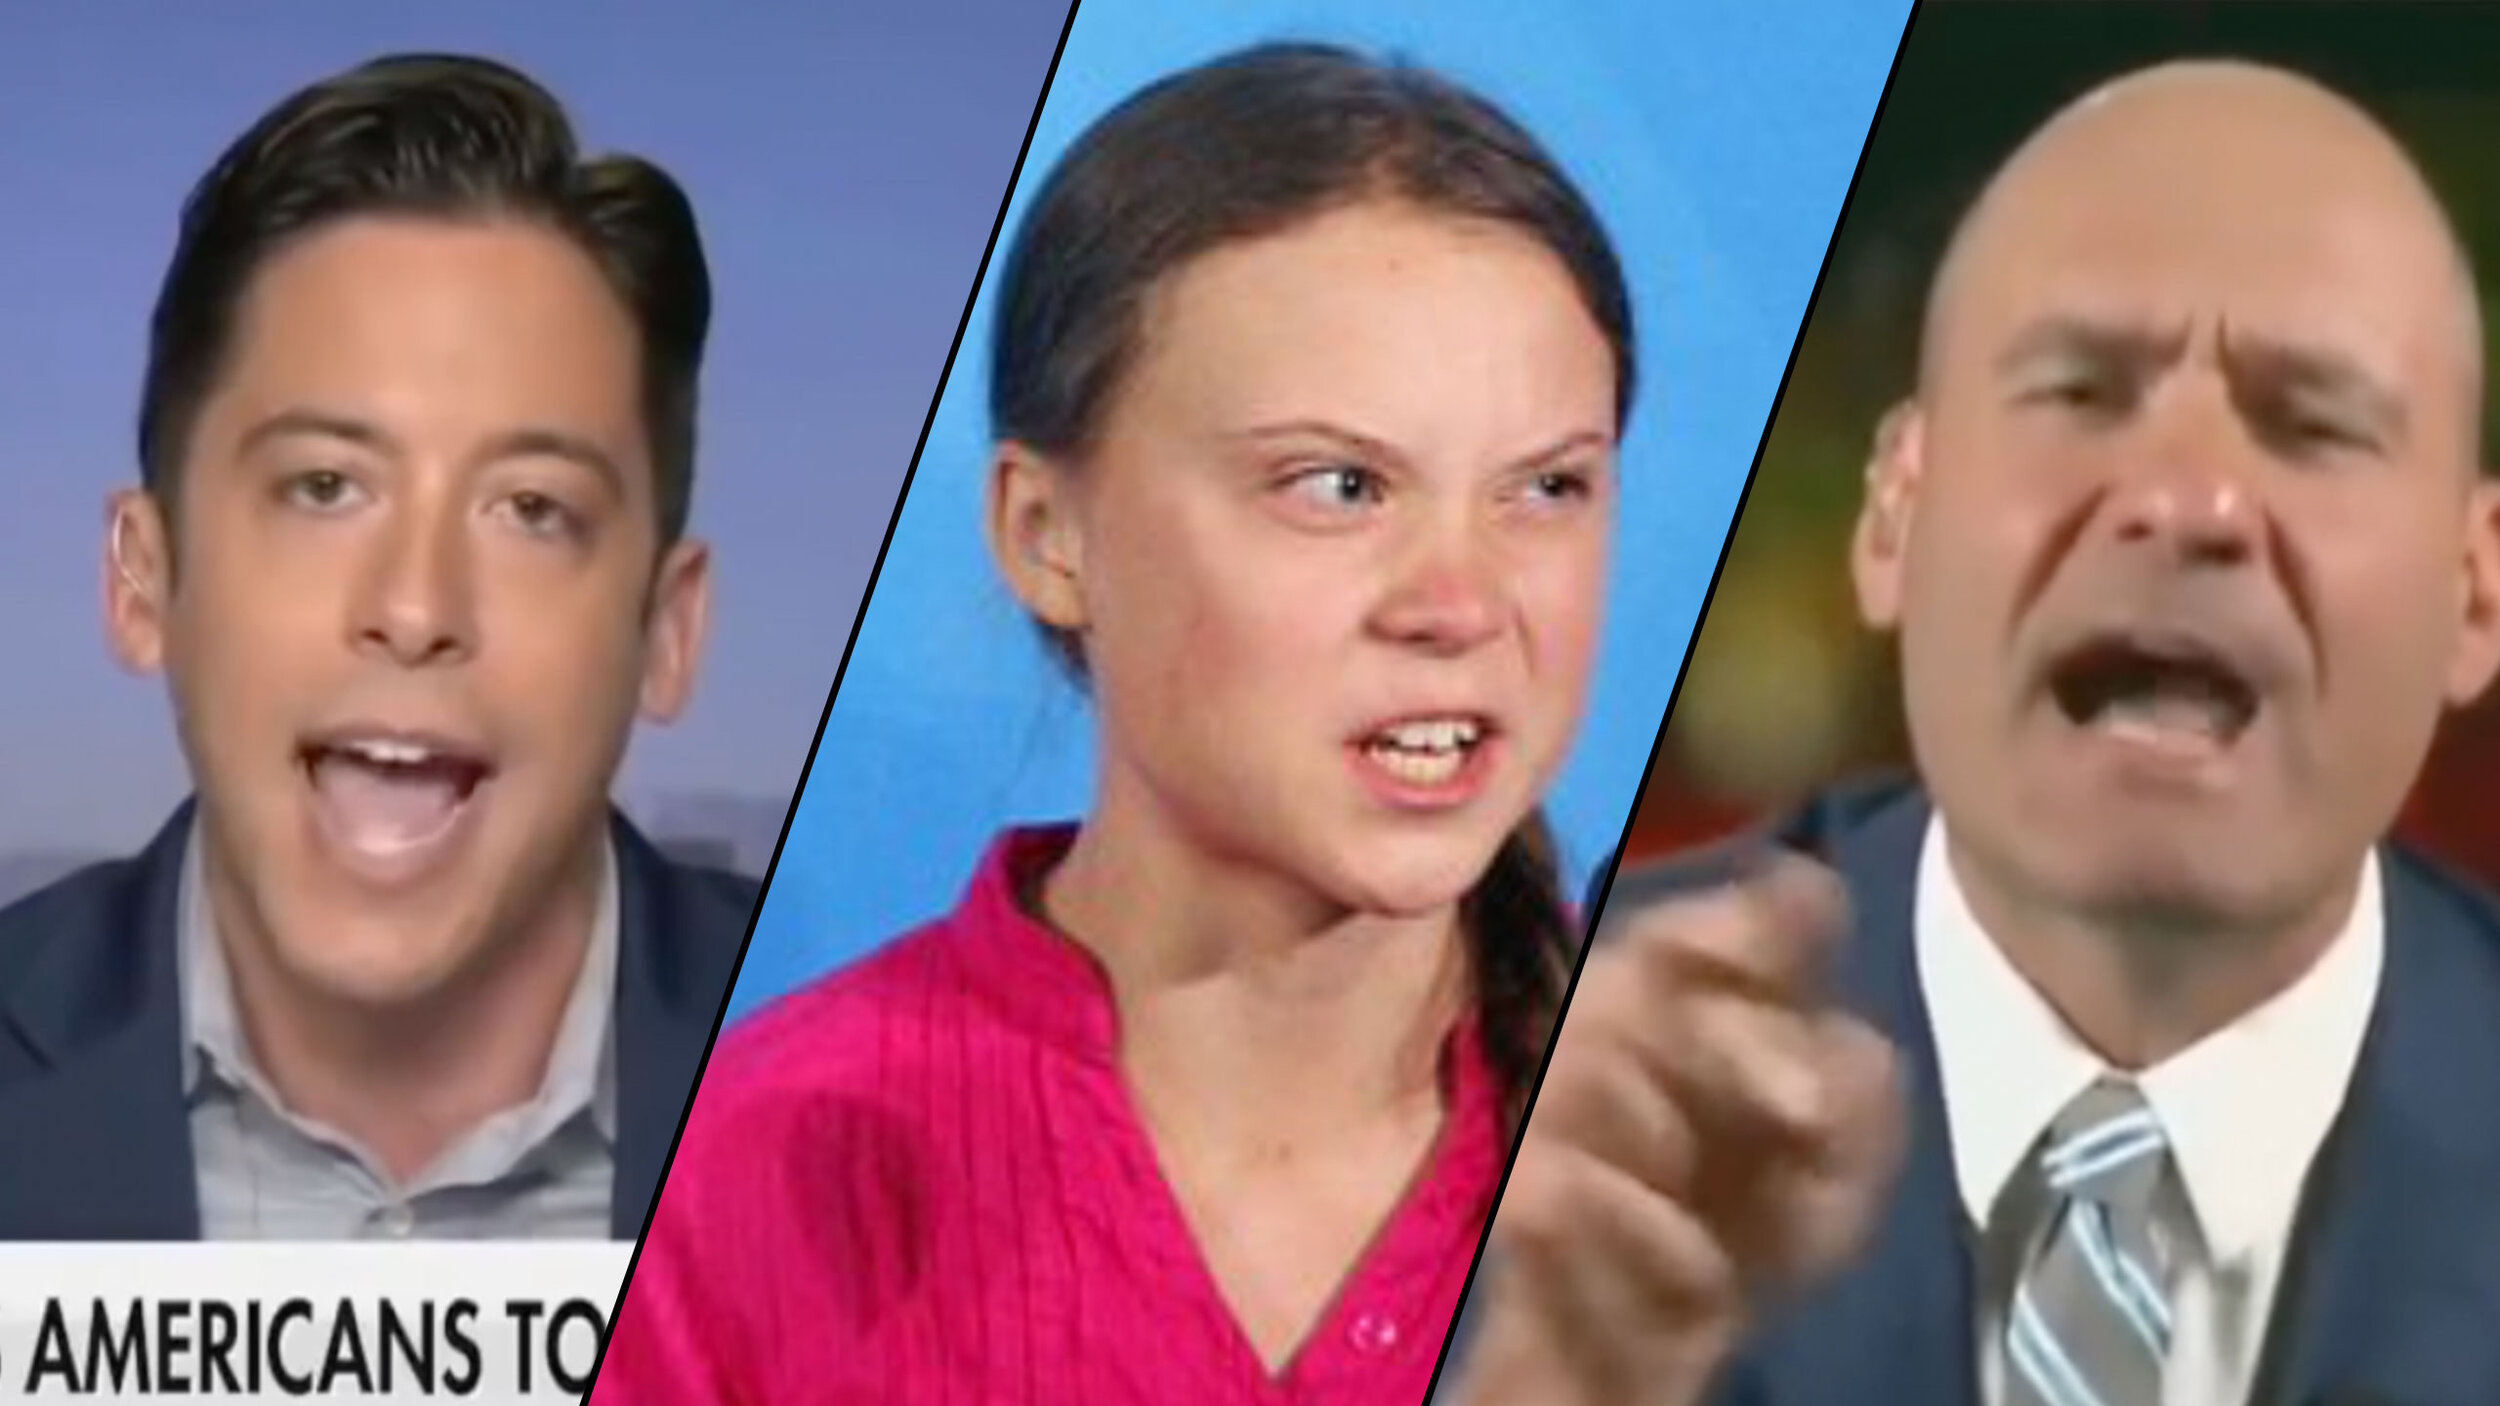 """Michael Knowles tells the truth about """"mentally ill Swedish child"""" Greta Thunberg, and Christopher Hahn pretends to be outraged."""